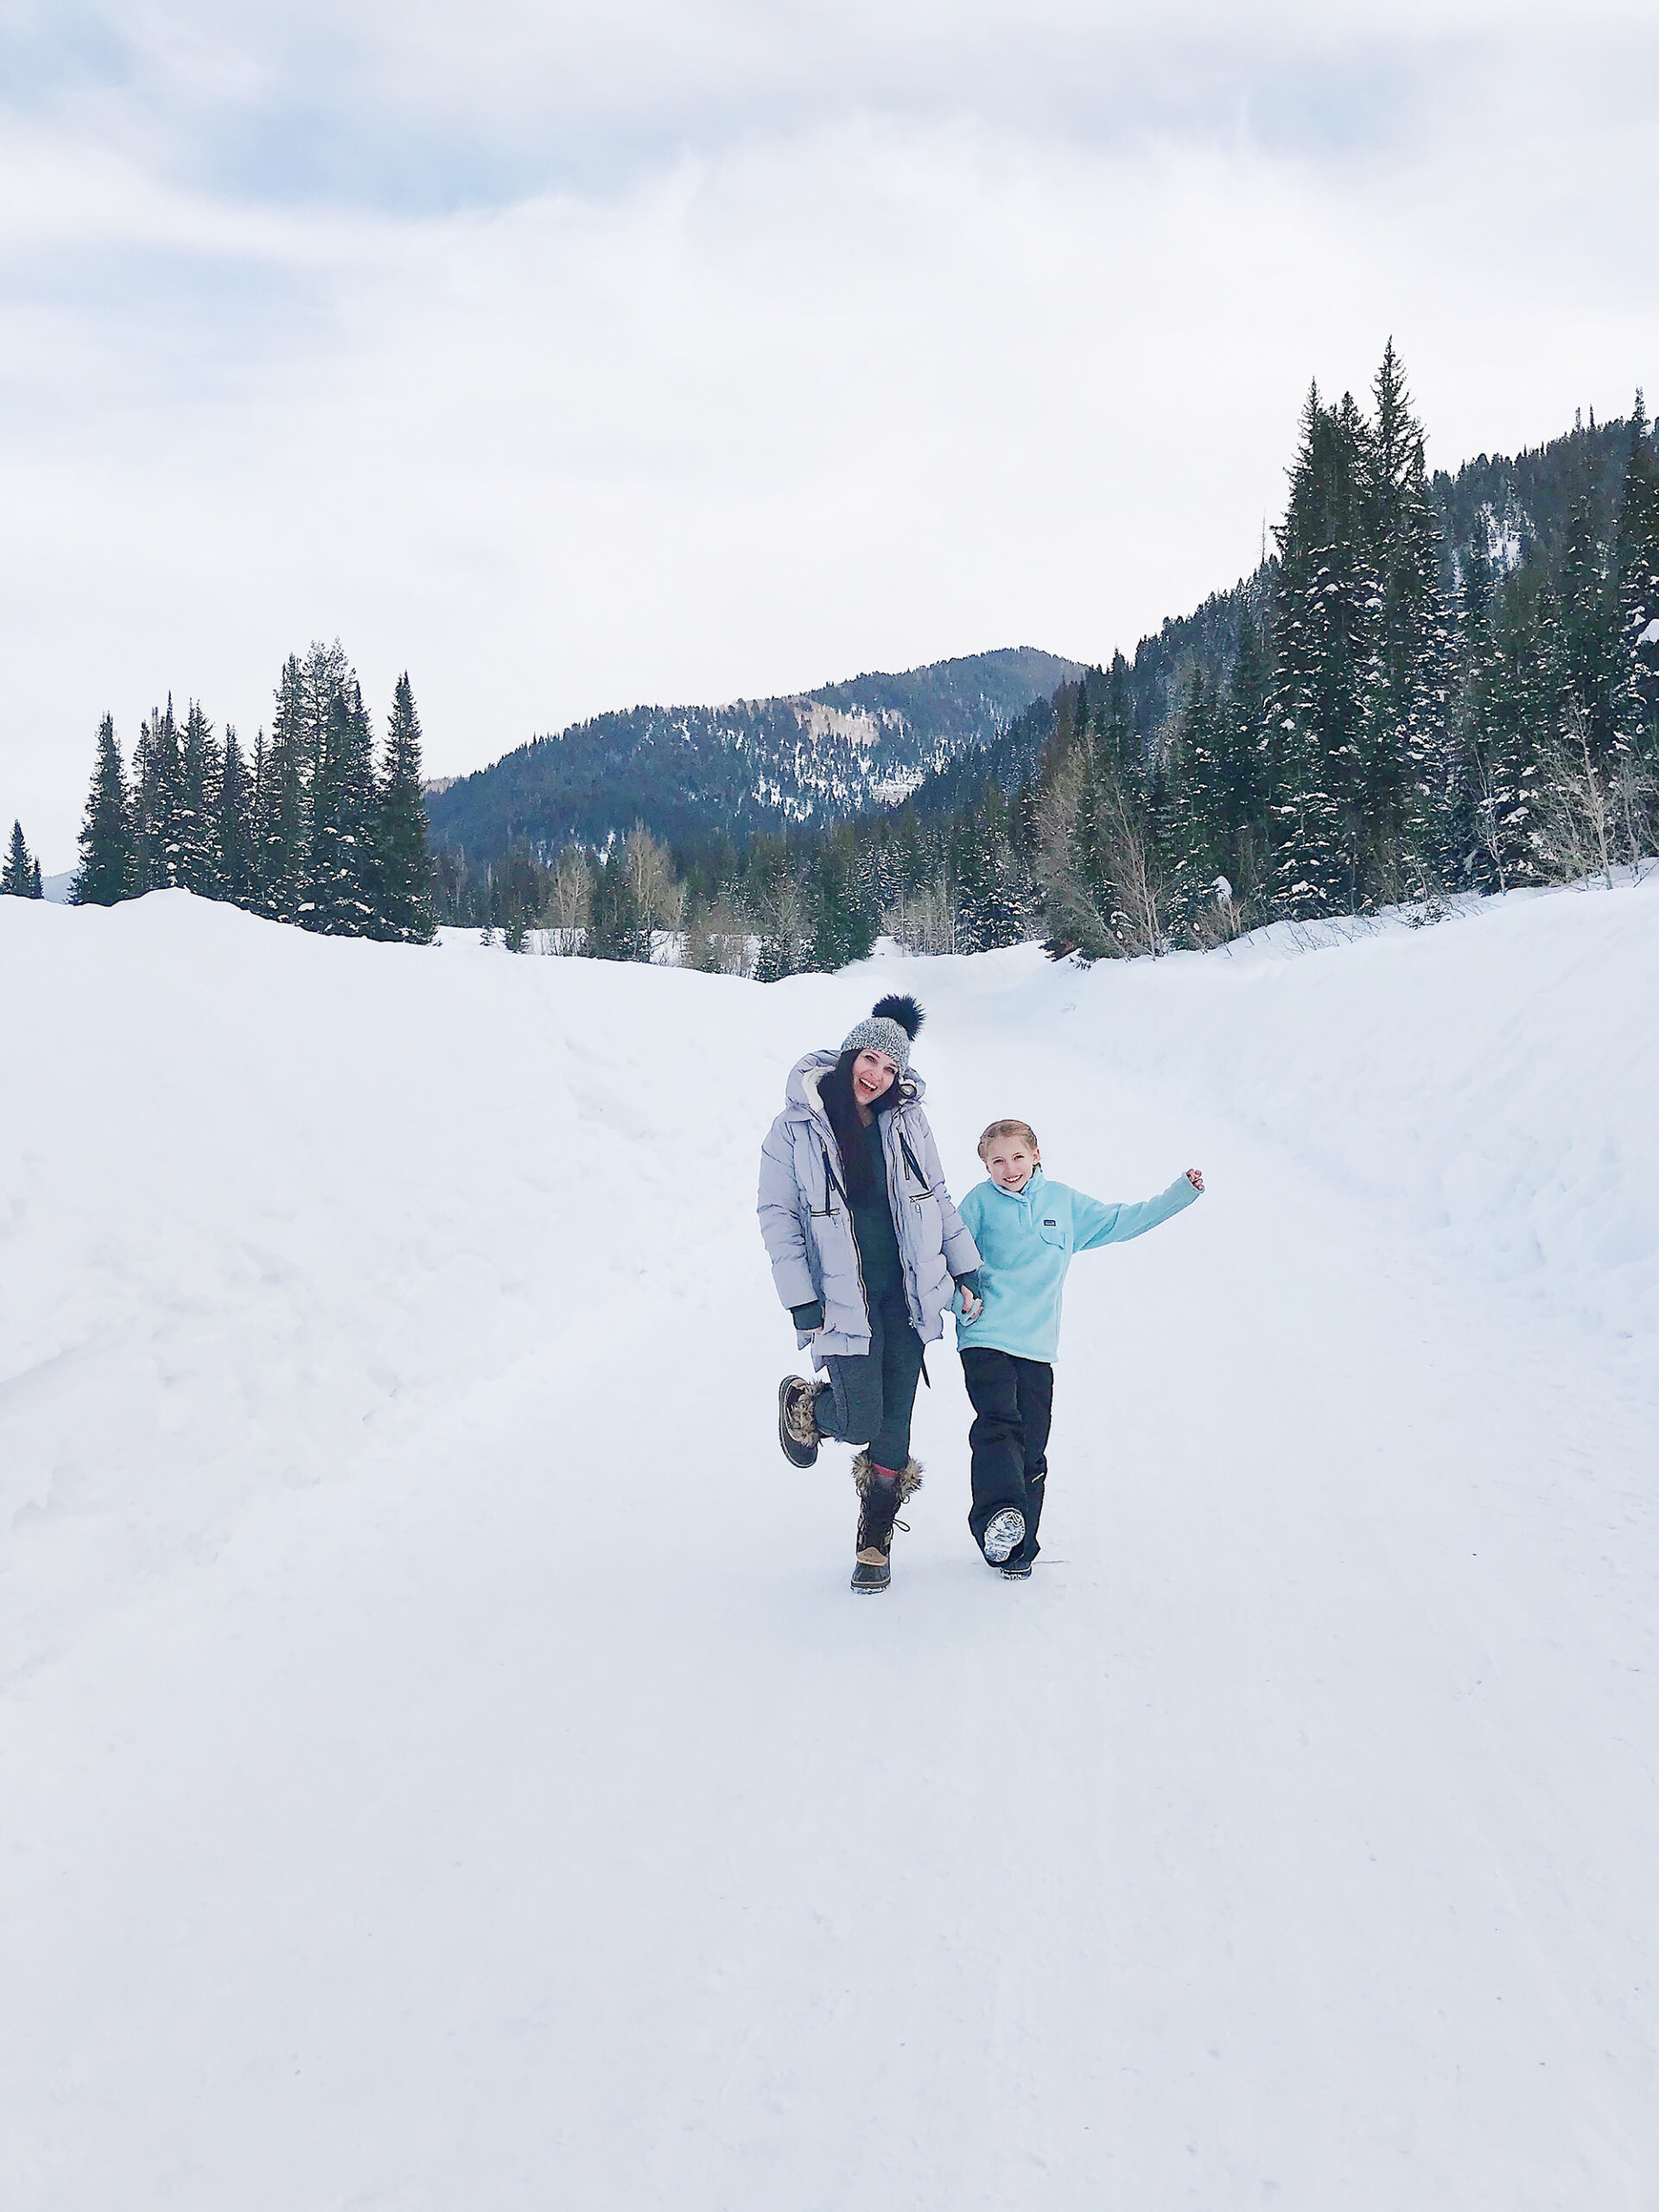 Our Utah Winter Travel Guide is out! Sharing what to Pack and where to Go for a Utah Winter Adventure. Our top 5 winter adventures!  || Darling Darleen Top CT Lifestyle Blogger